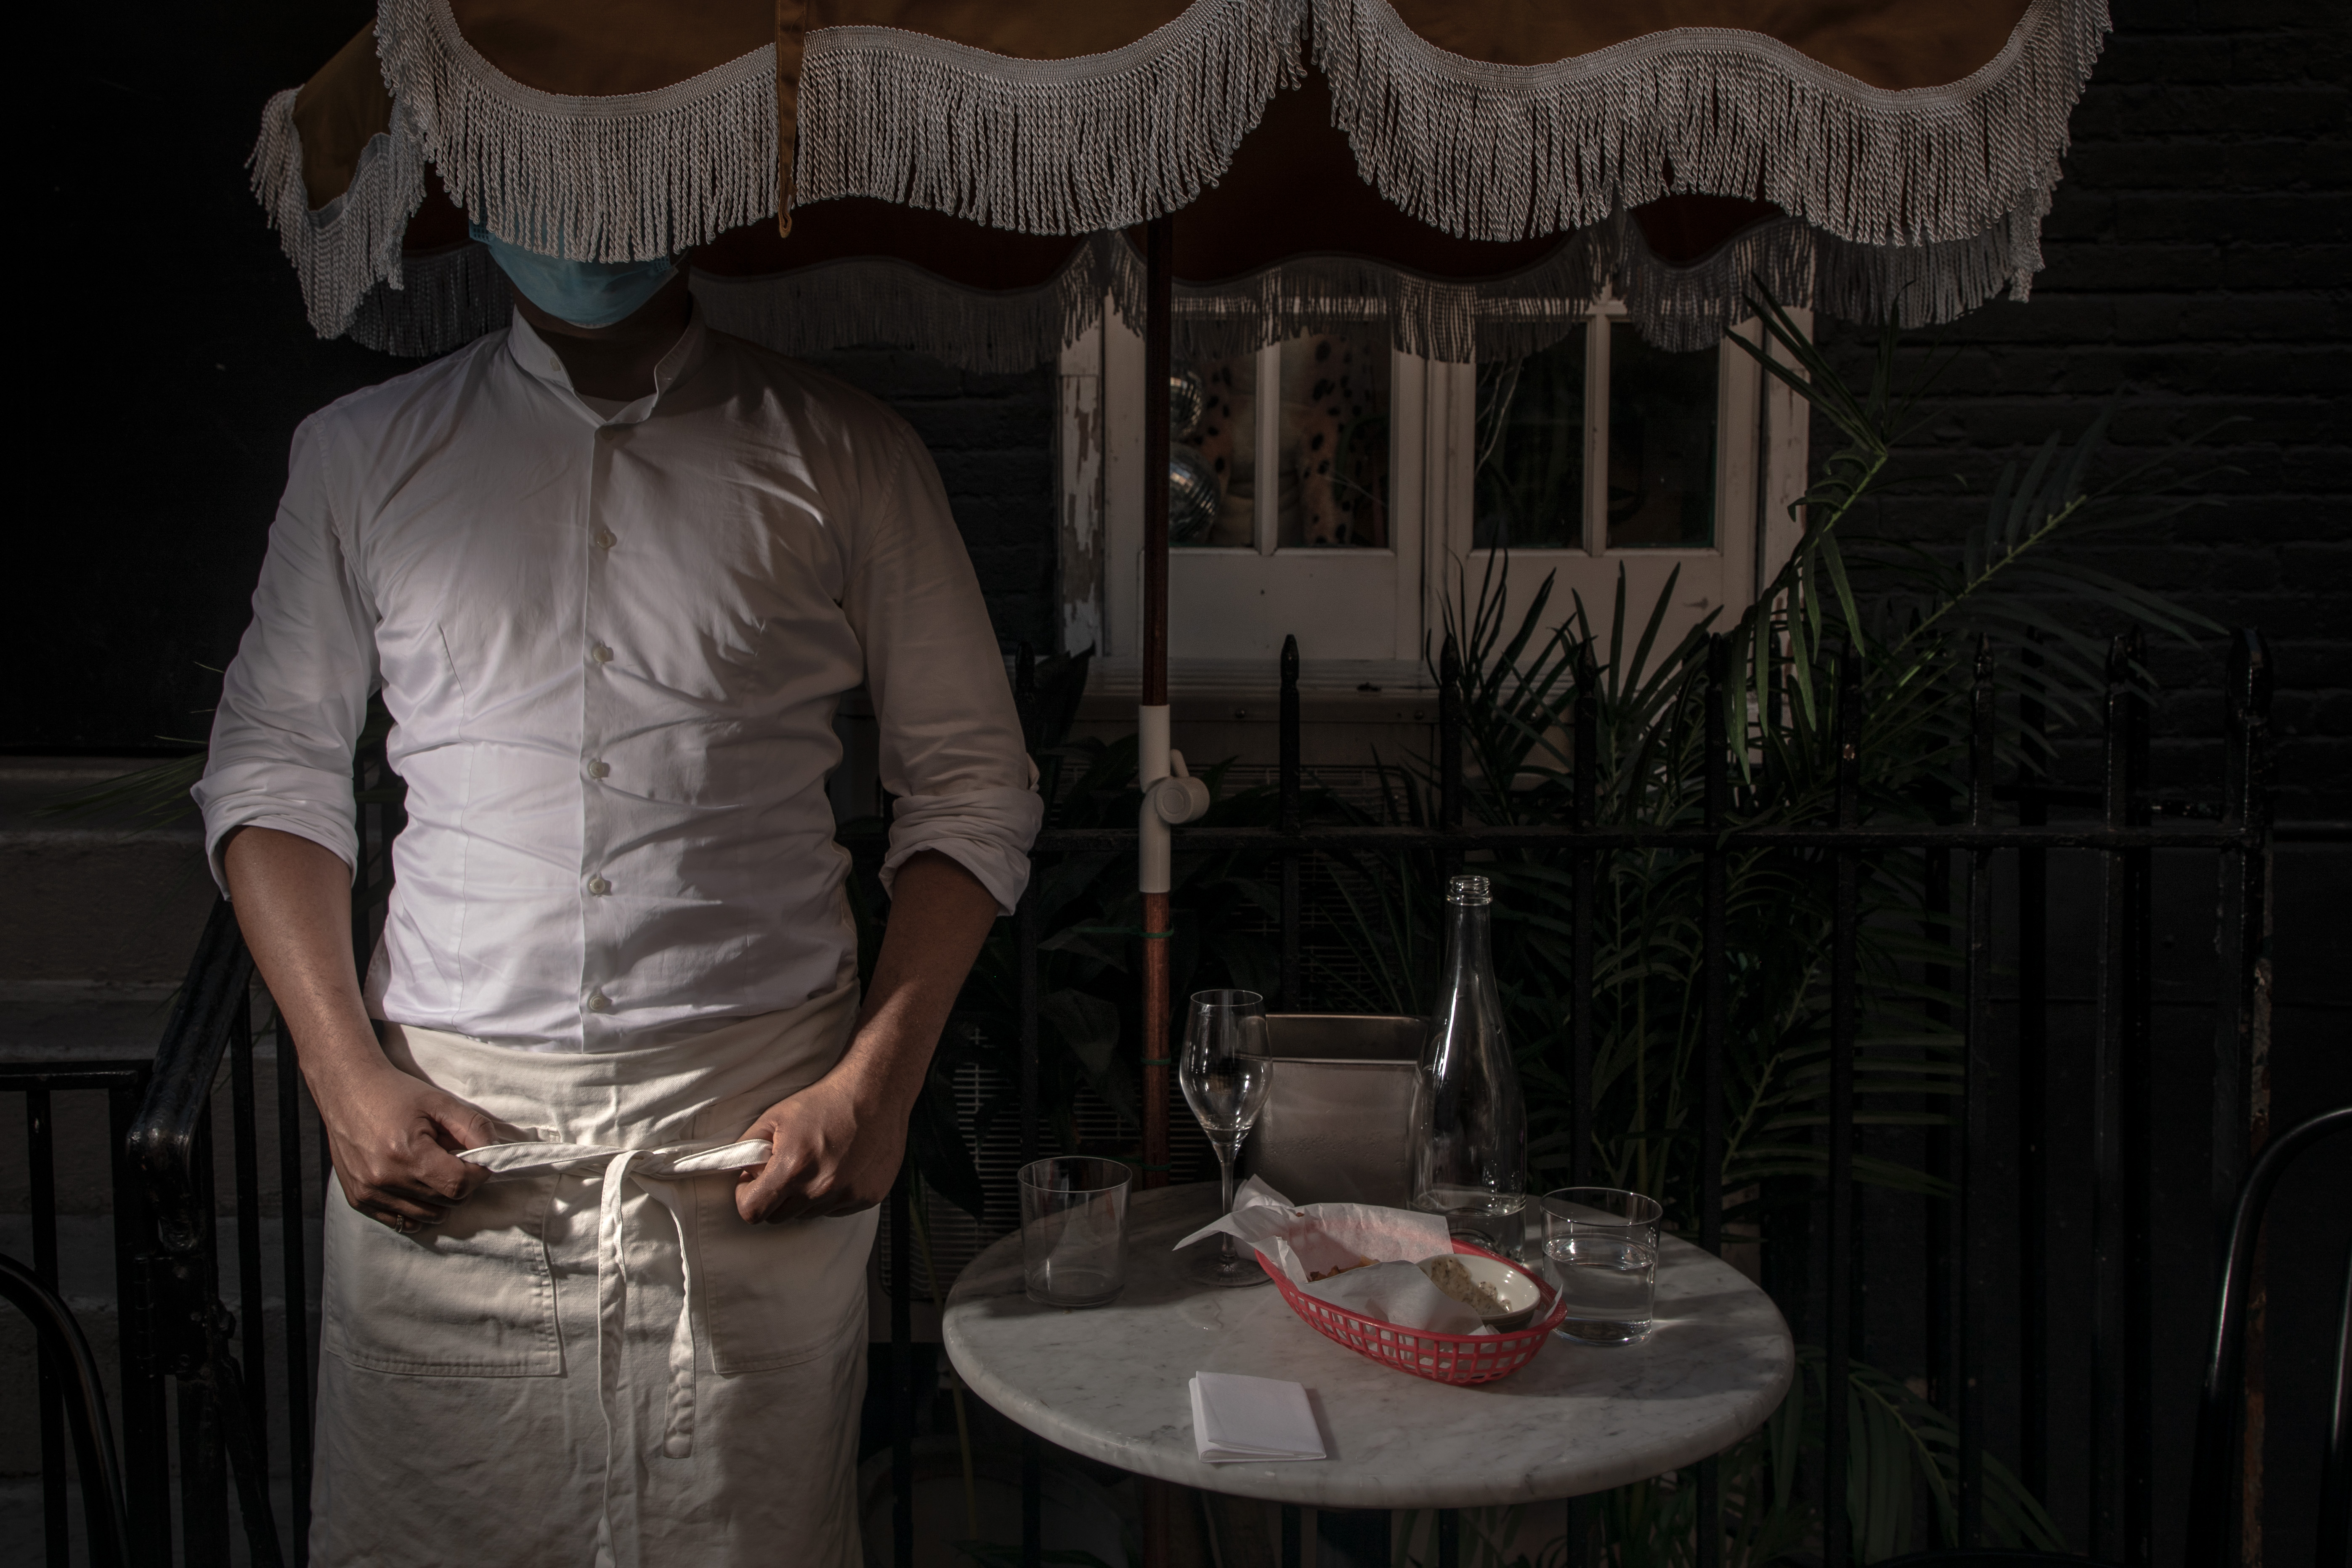 A man adjusts his apron standing next to a table with his face obscured by an umbrella.